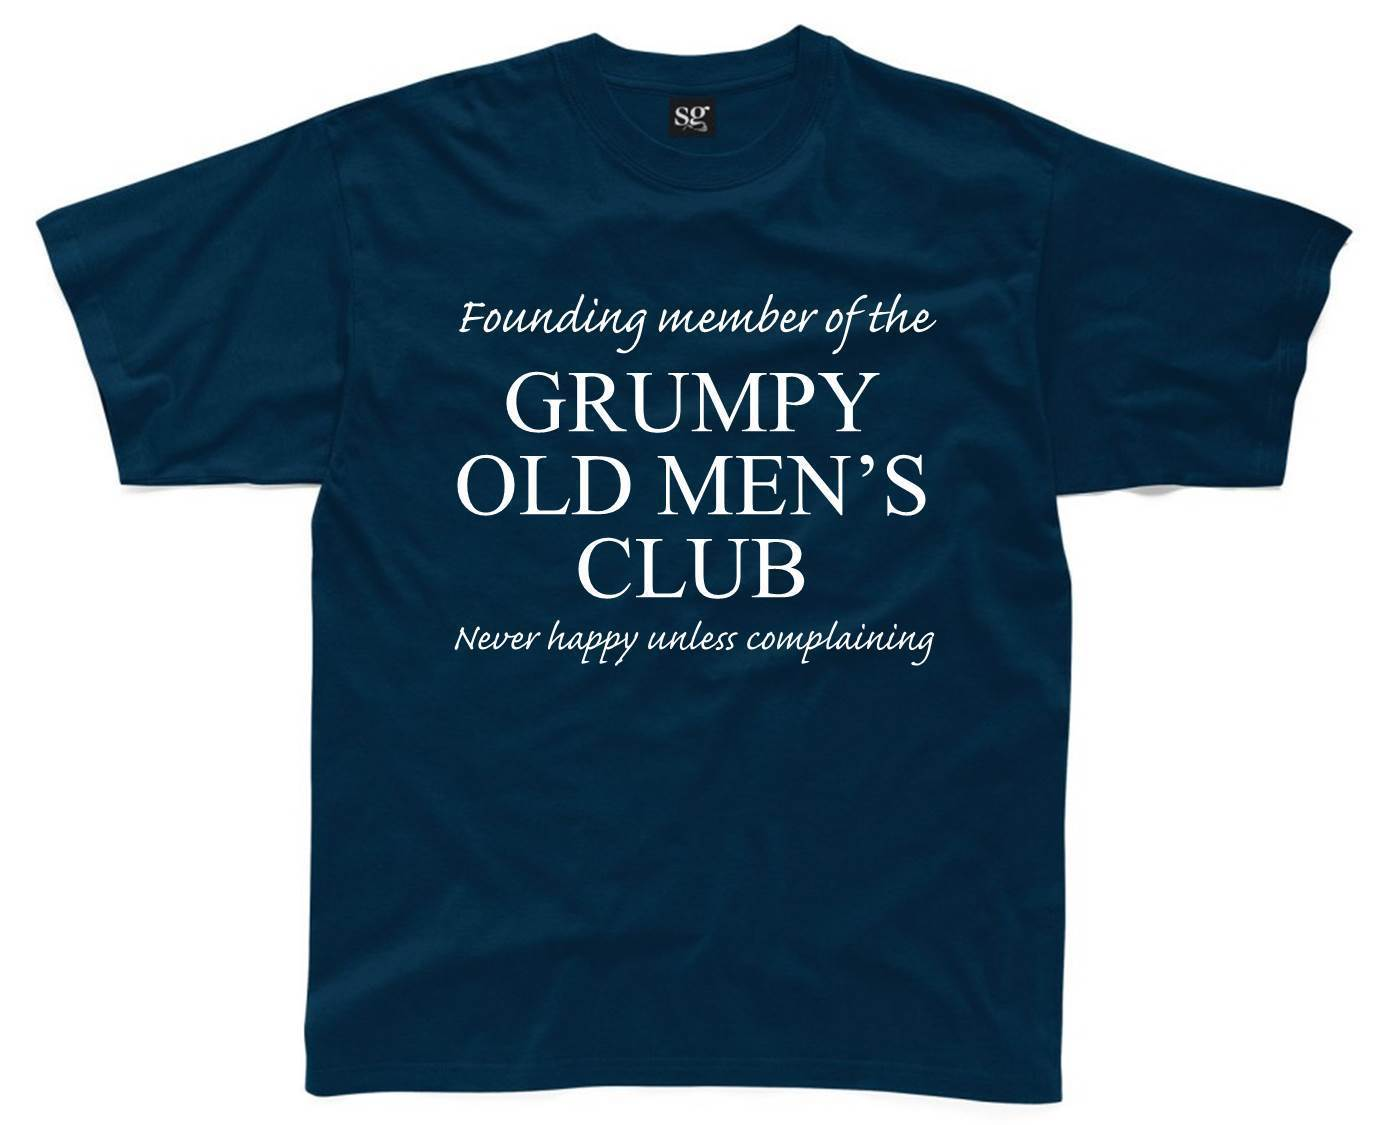 GRUMPY OLD MENS CLUB Mens T-Shirt S-3XL Funny Printed Joke Git Dad Fathers Day New T Shirts Funny Tops Tee New Unisex Funny